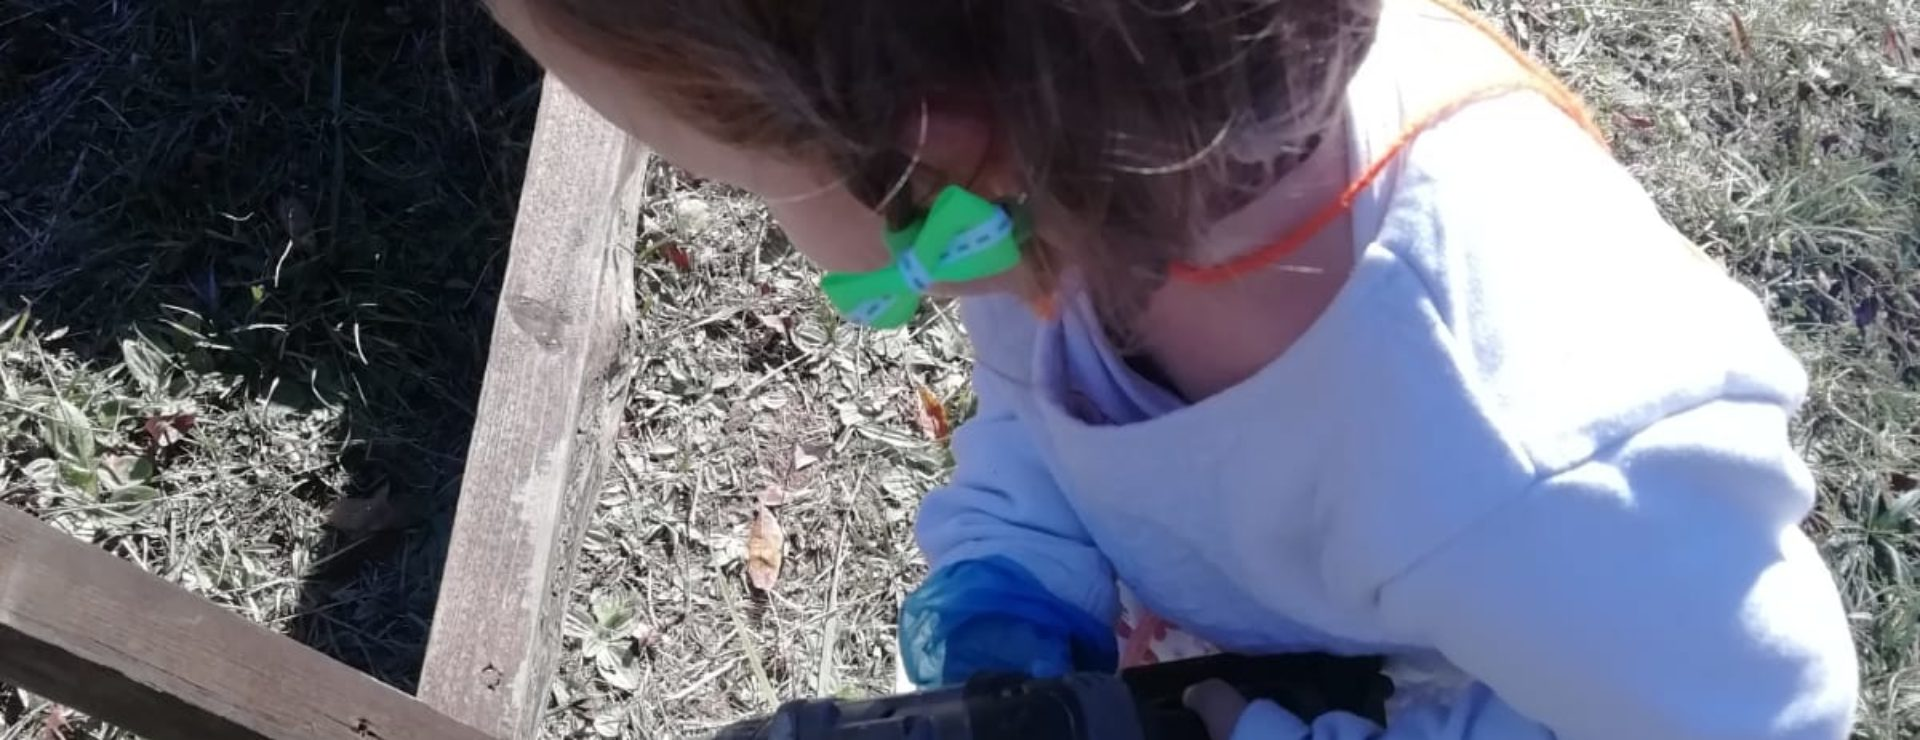 A three-year old kid is building a 'House of the snails' - part of the new 'Classroom in nature' school project the village is developing.